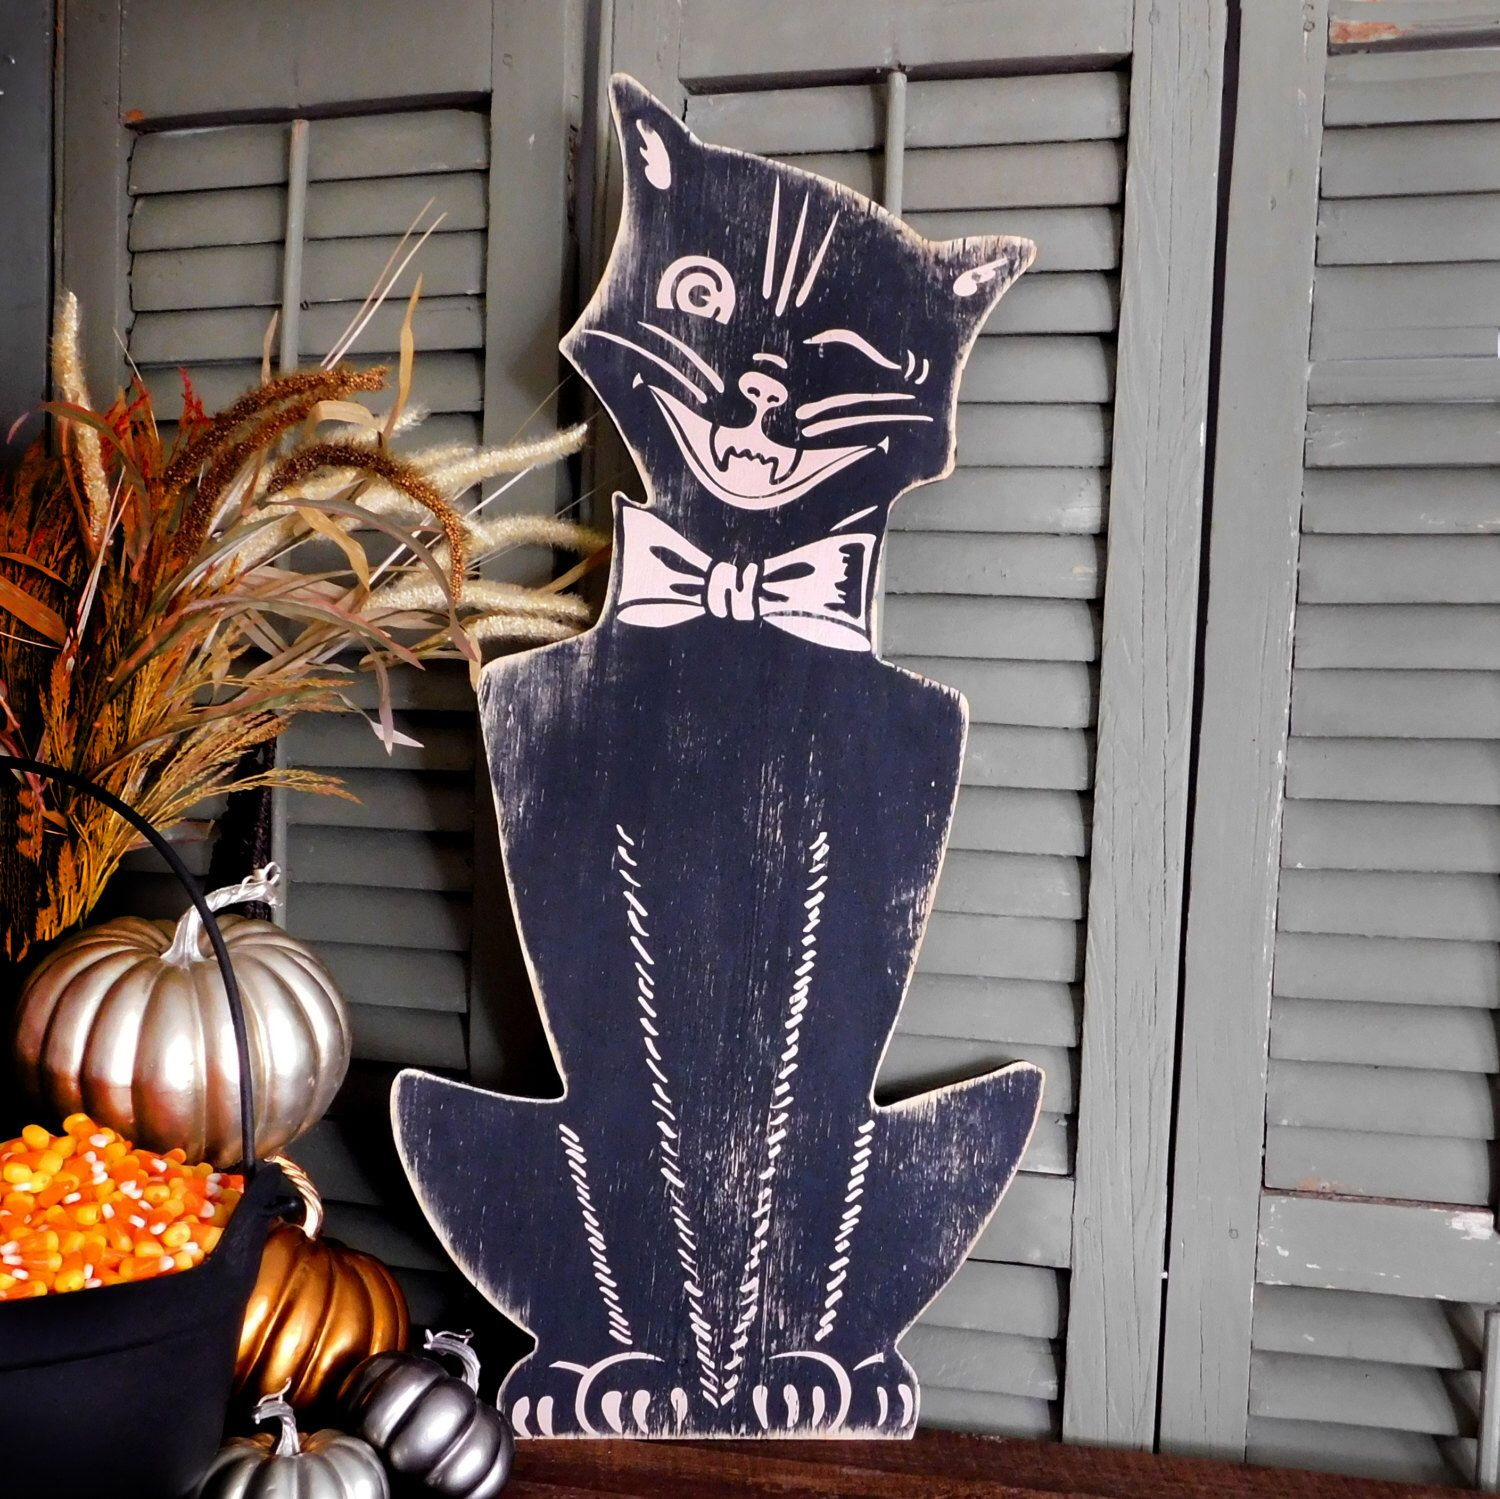 retro halloween cat halloween decor large scale vintage style halloween cat wooden wall decor by slippinsouthern - Vintage Style Halloween Decorations